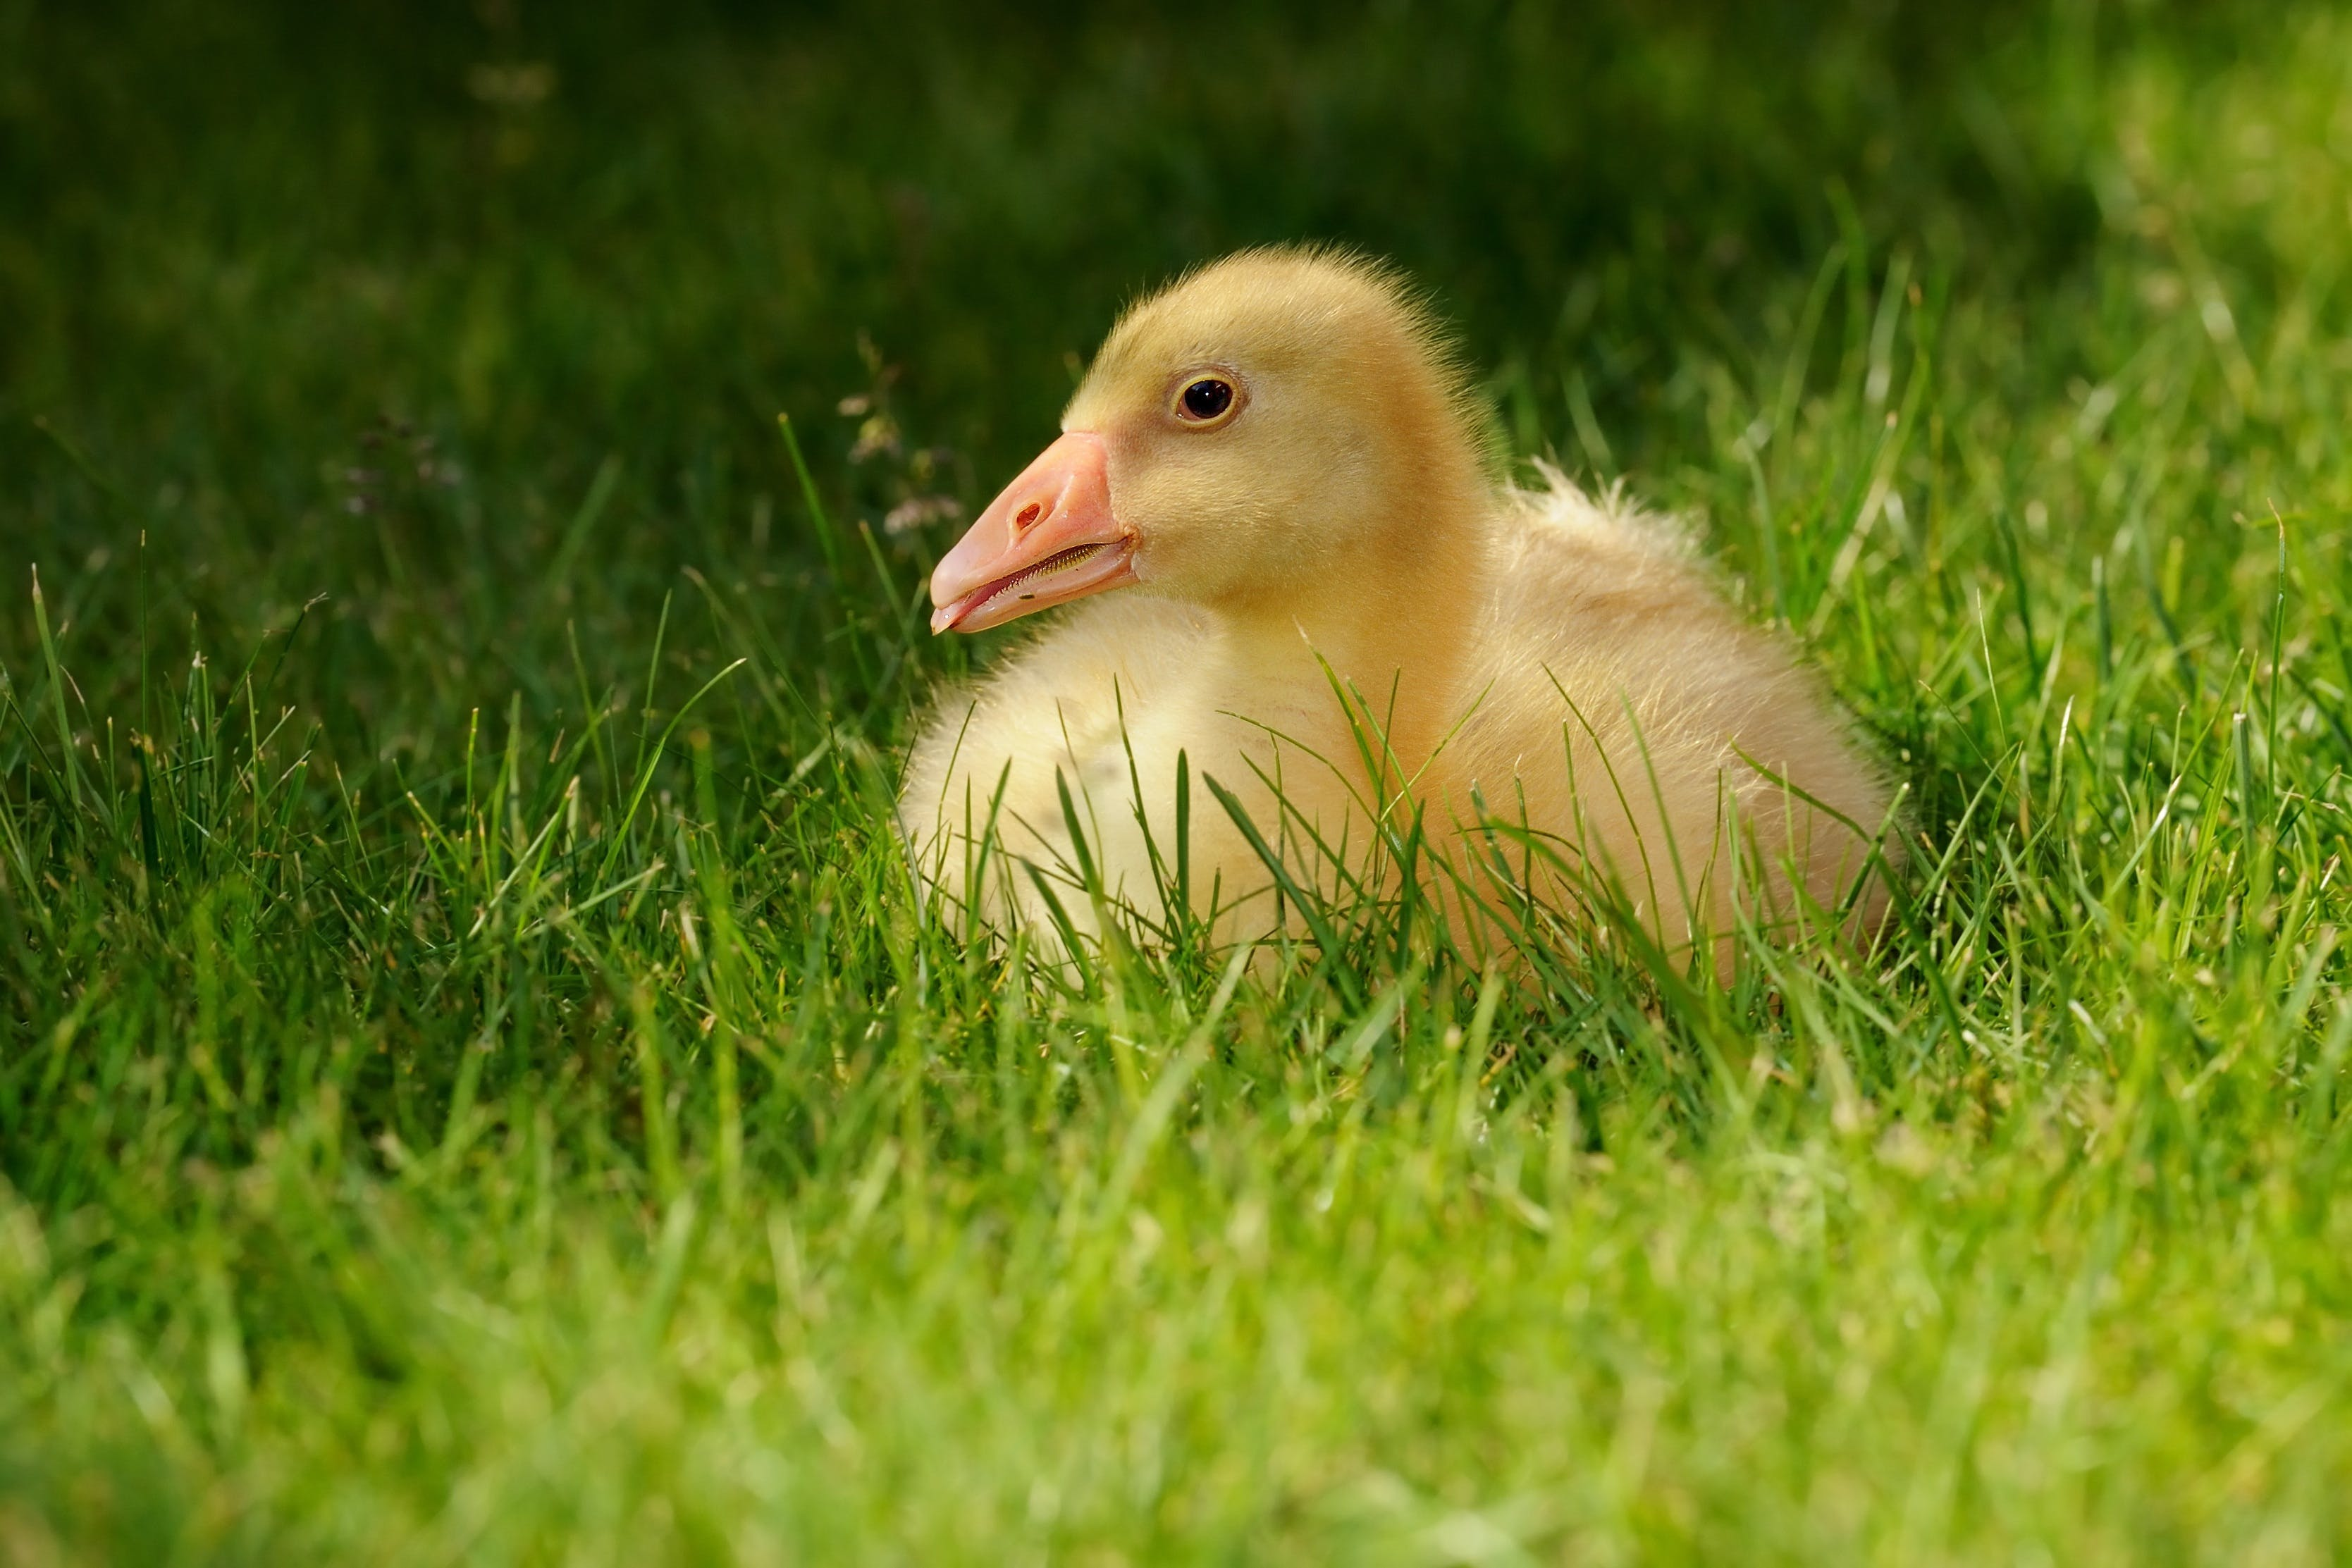 Yellow Duck on Green Grass Field